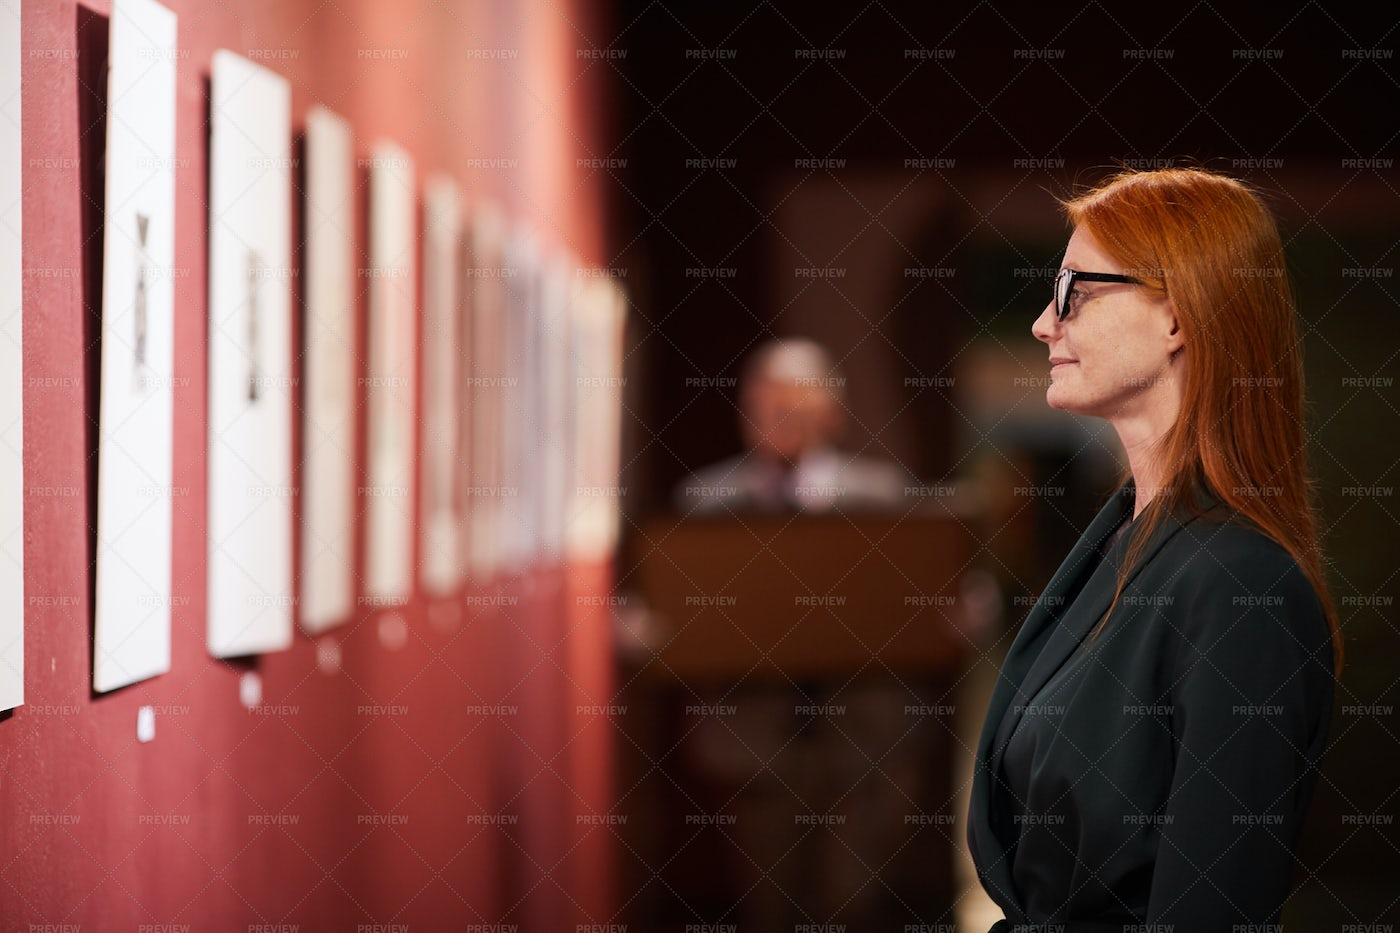 Woman In The Gallery: Stock Photos